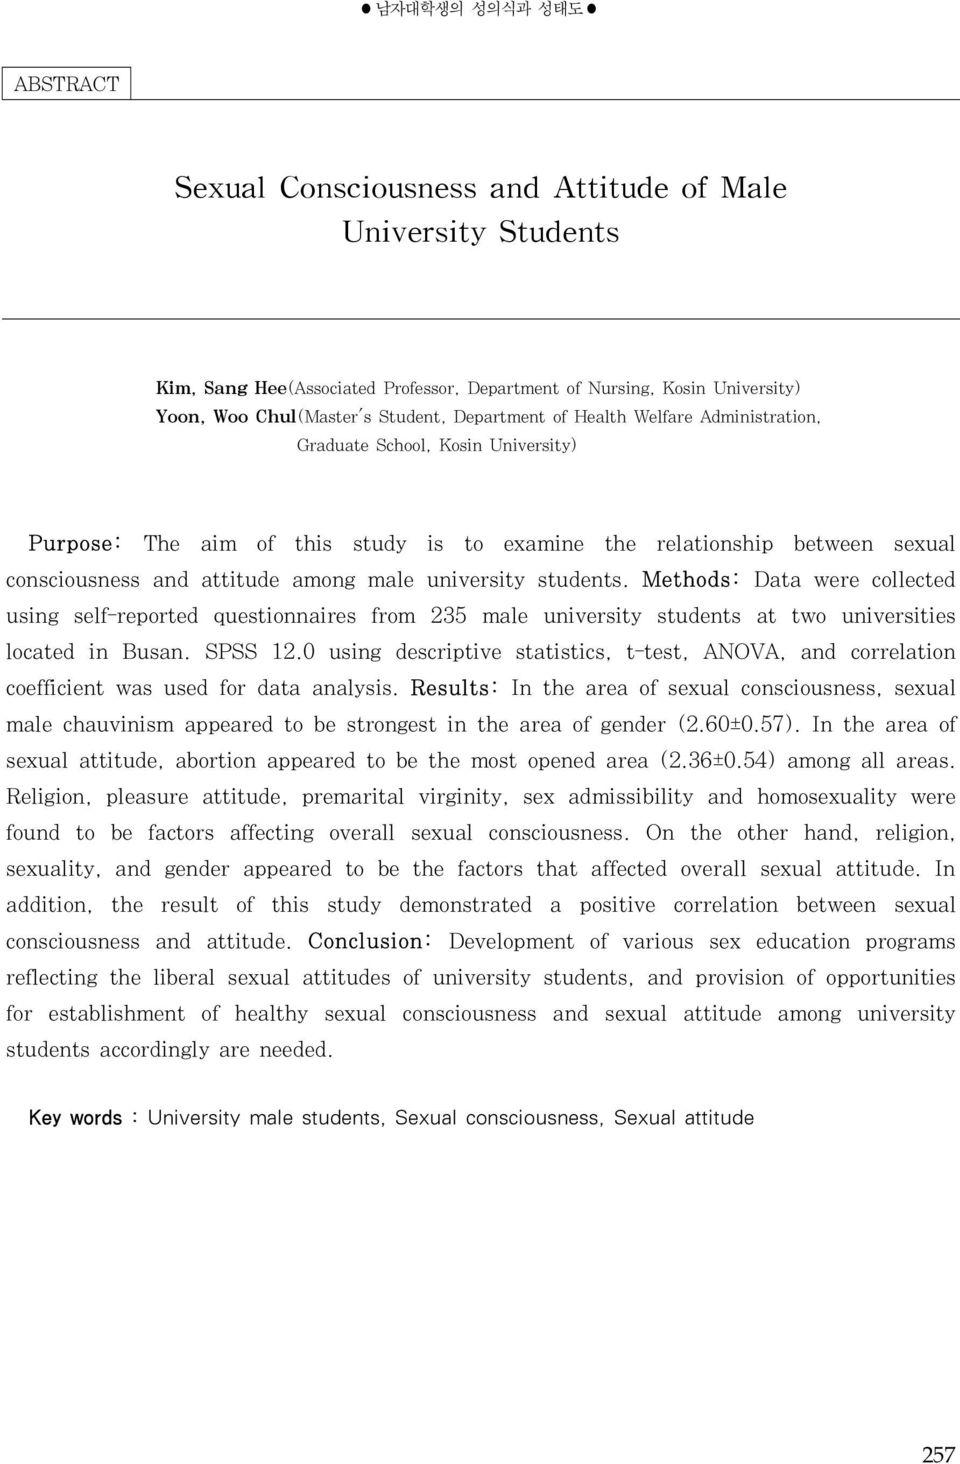 university students. Methods: Data were collected using self-reported questionnaires from 235 male university students at two universities located in Busan. SPSS 12.